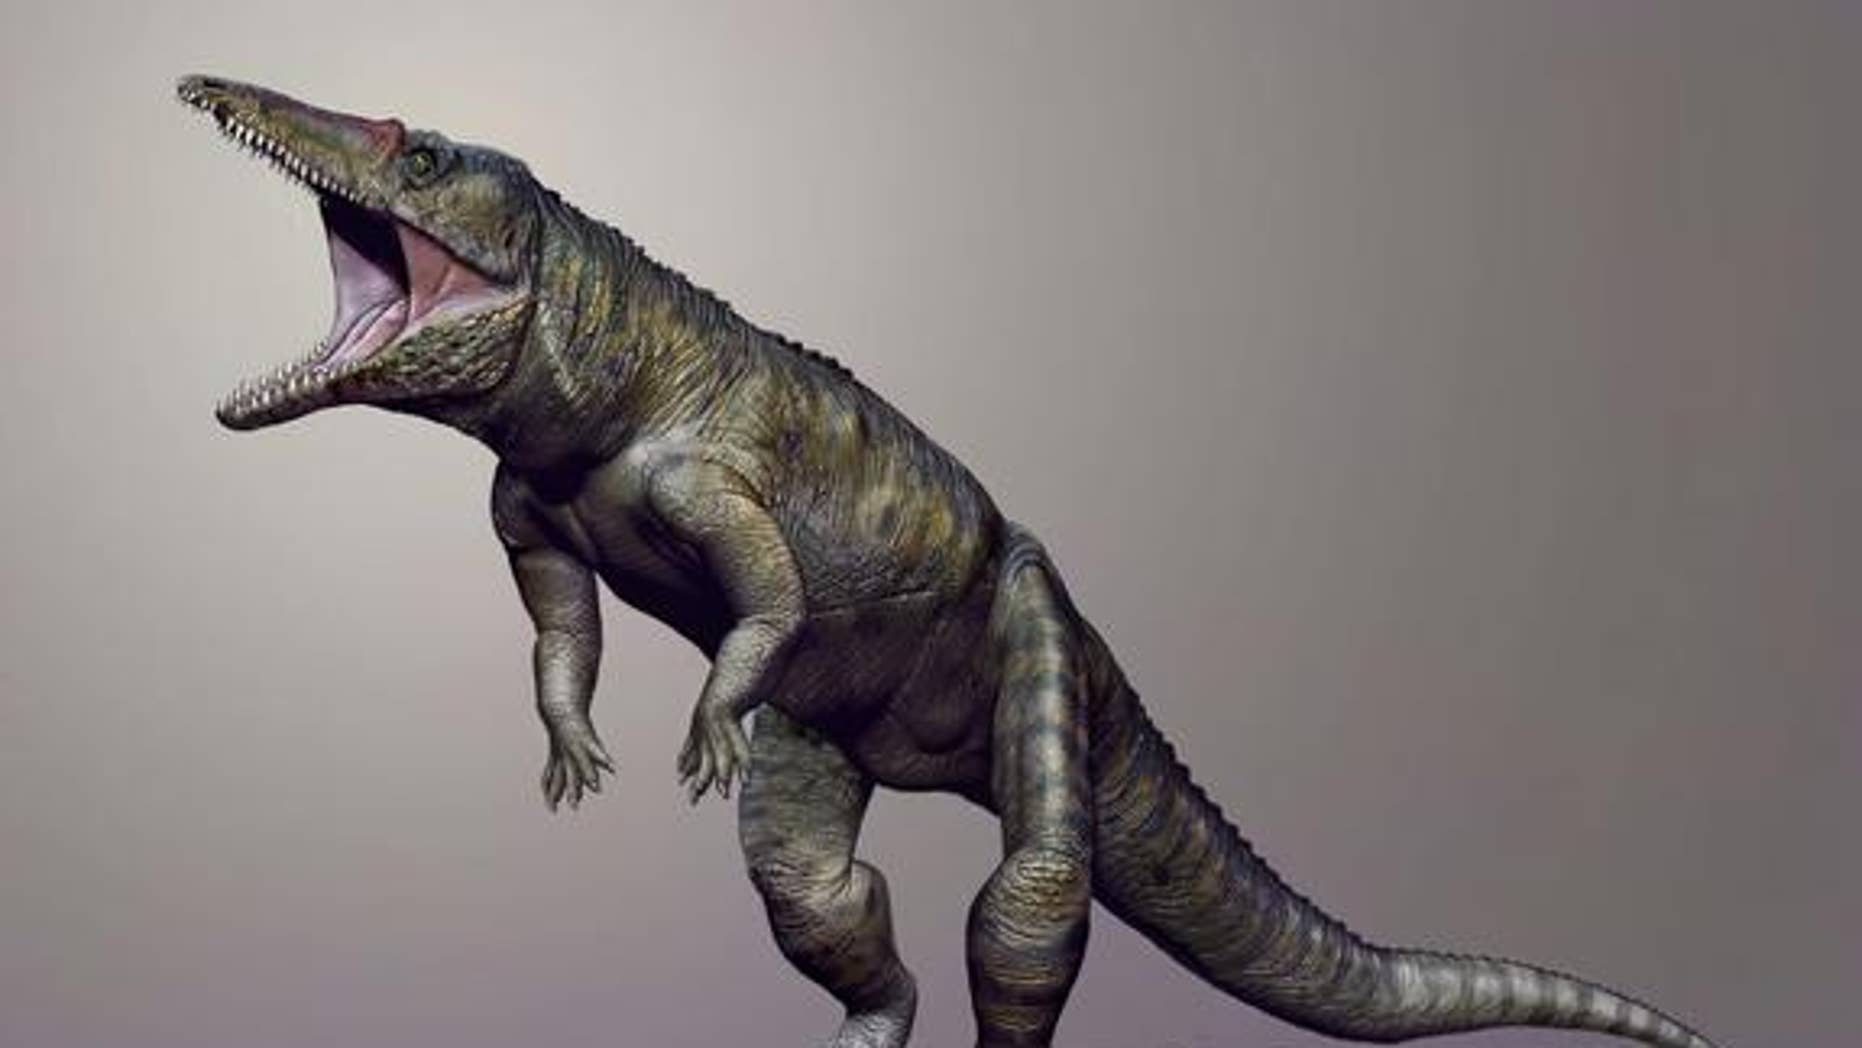 A life reconstruction of the giant crocodile ancestor (<em>Carnufex carolinensis</em>) that lived some 231 million years ago in what is now North Carolina.